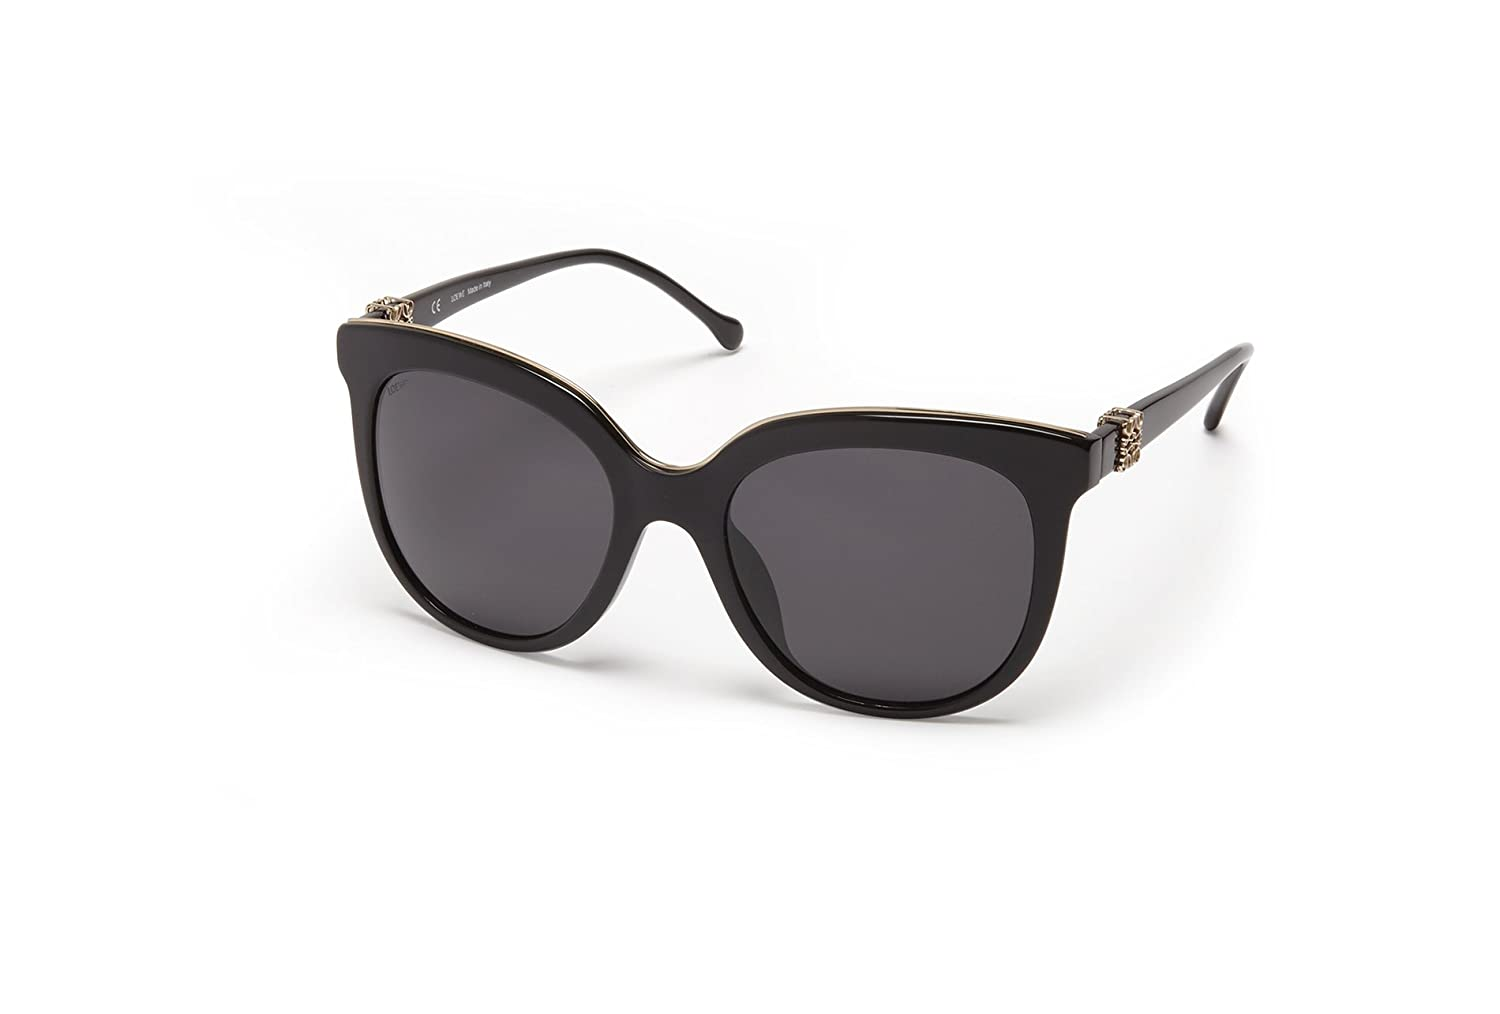 Amazon.com: Loewe Sunglasses SLW948G570700 (57mm) Women ...